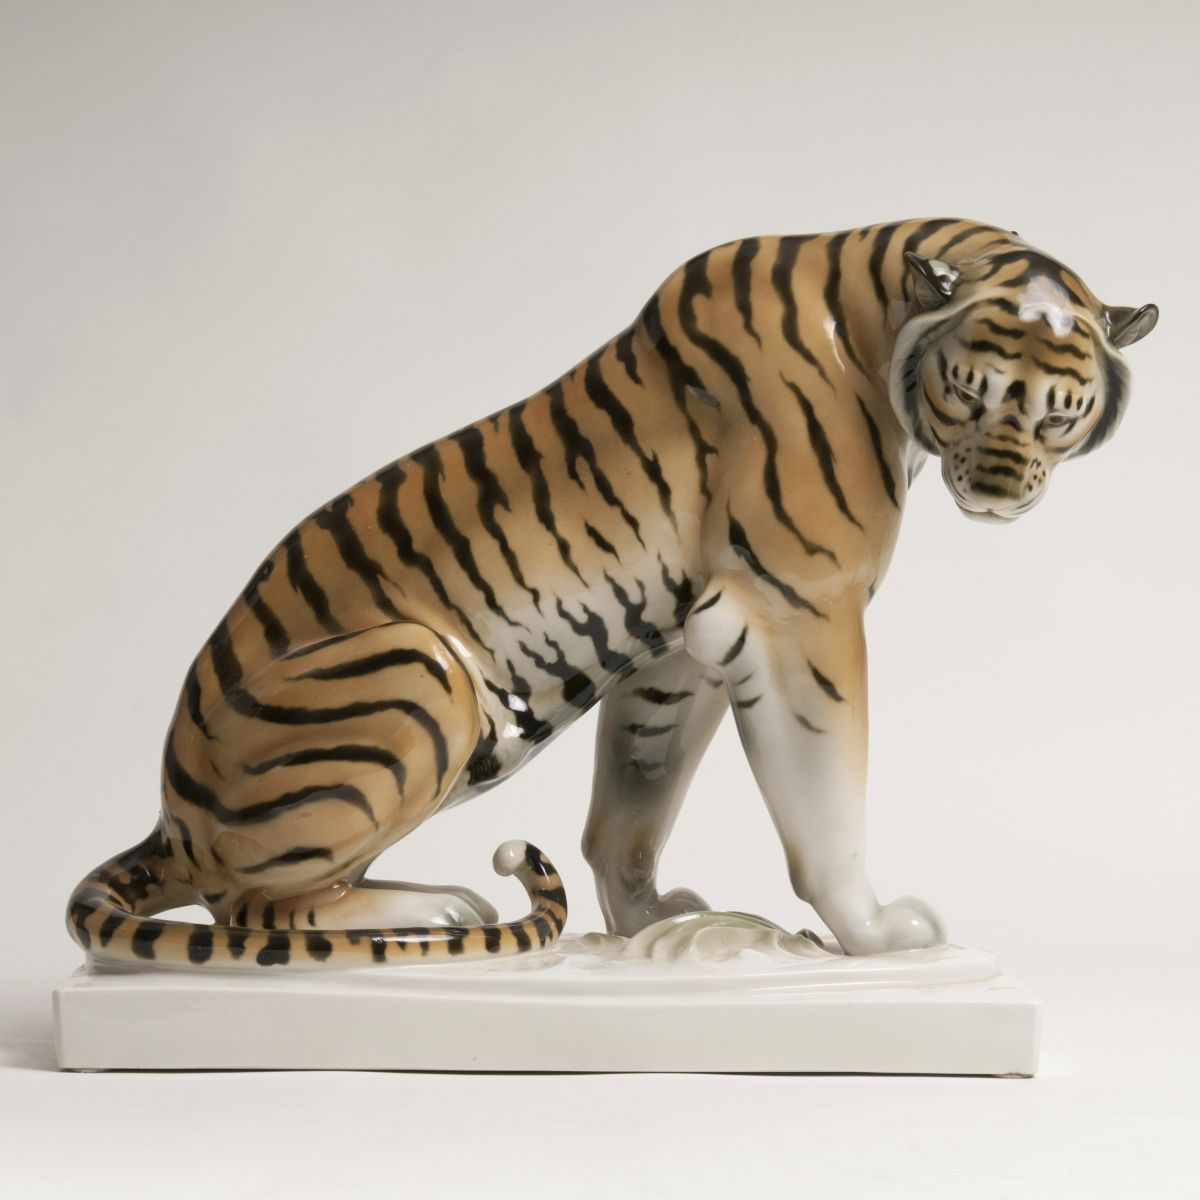 A Large Animal Figure 'Seated Tiger'